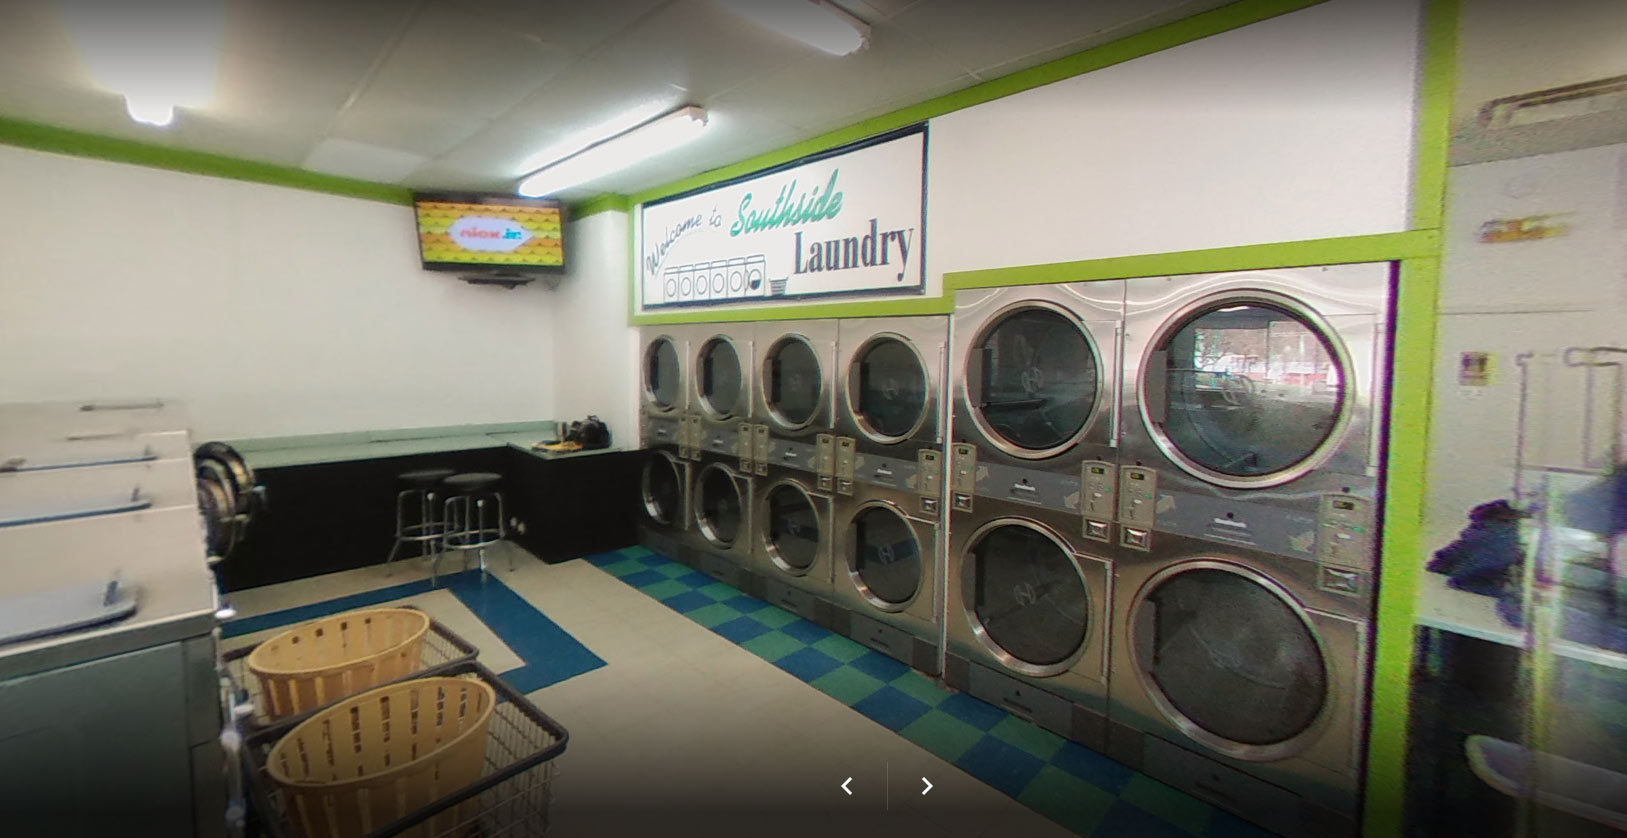 coin operated laundry southside coin laundry southside. Black Bedroom Furniture Sets. Home Design Ideas